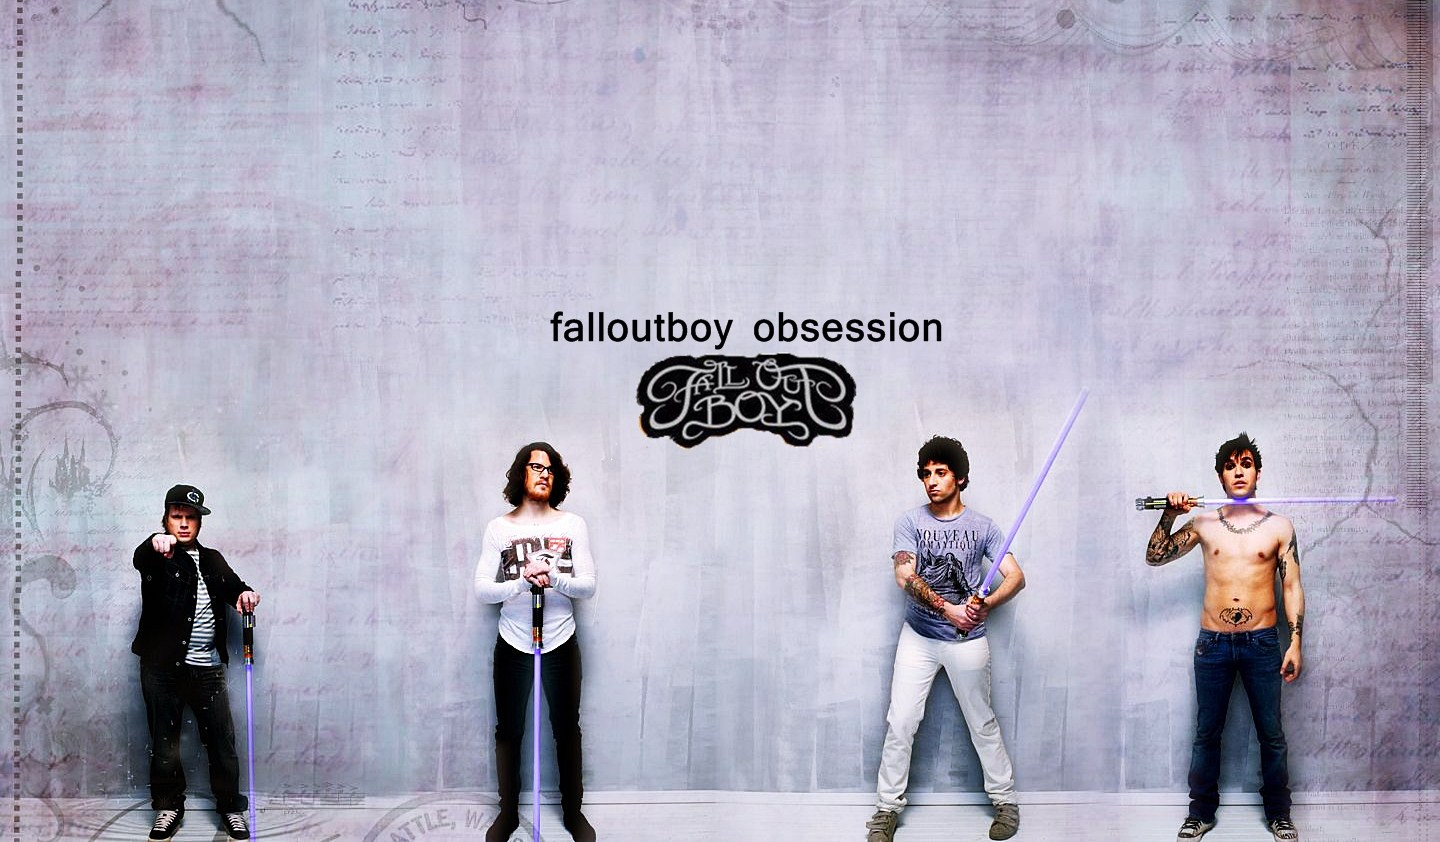 Fob Wallpaper Fall Out Boy Fall Out Boy Wallpapers Fob Obsession Fall Out Boy